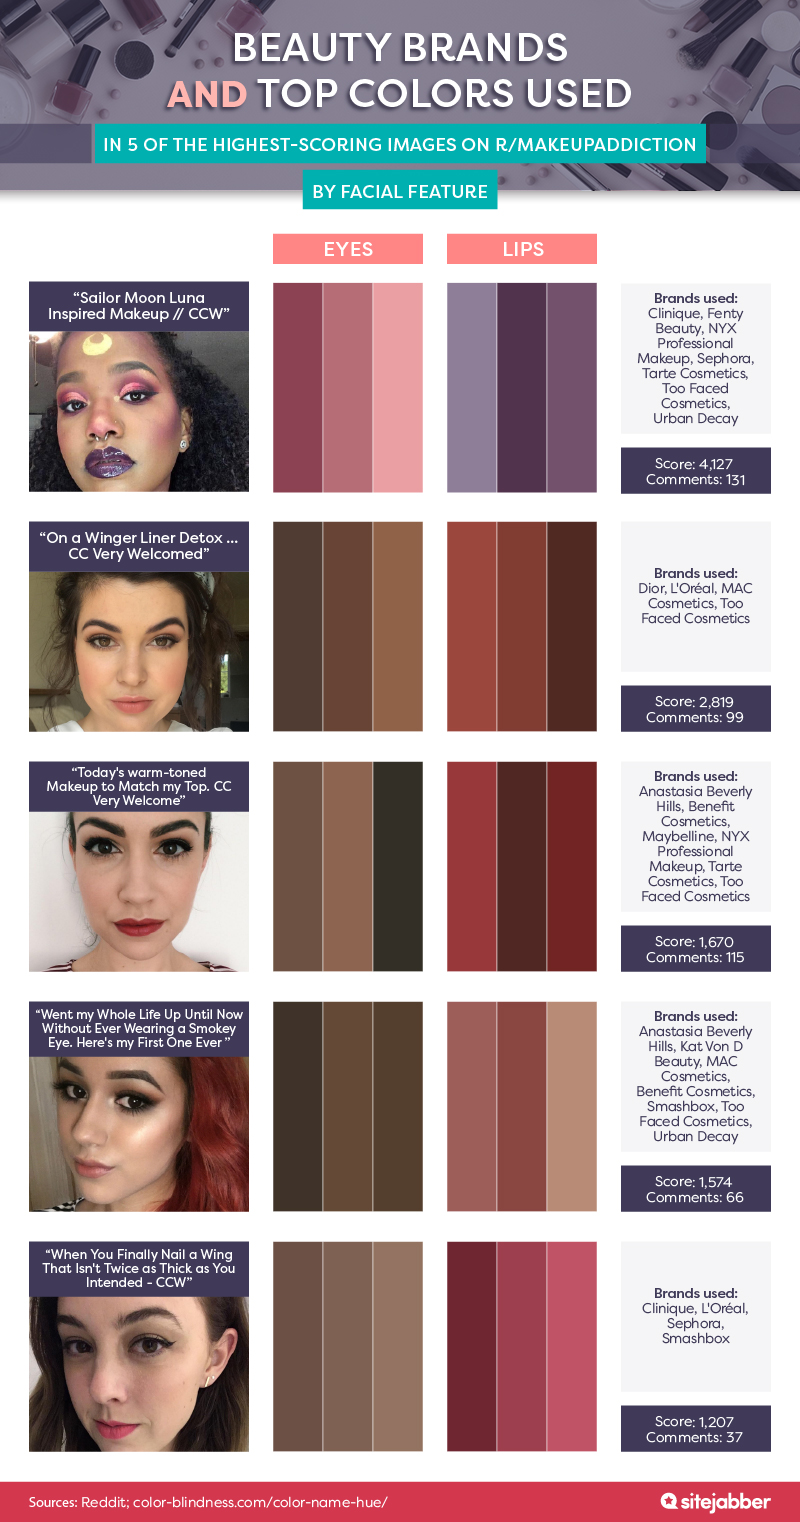 Beauty brands and top colors used in 5 of the highest-scoring images on r/makeupaddiction, by facial feature